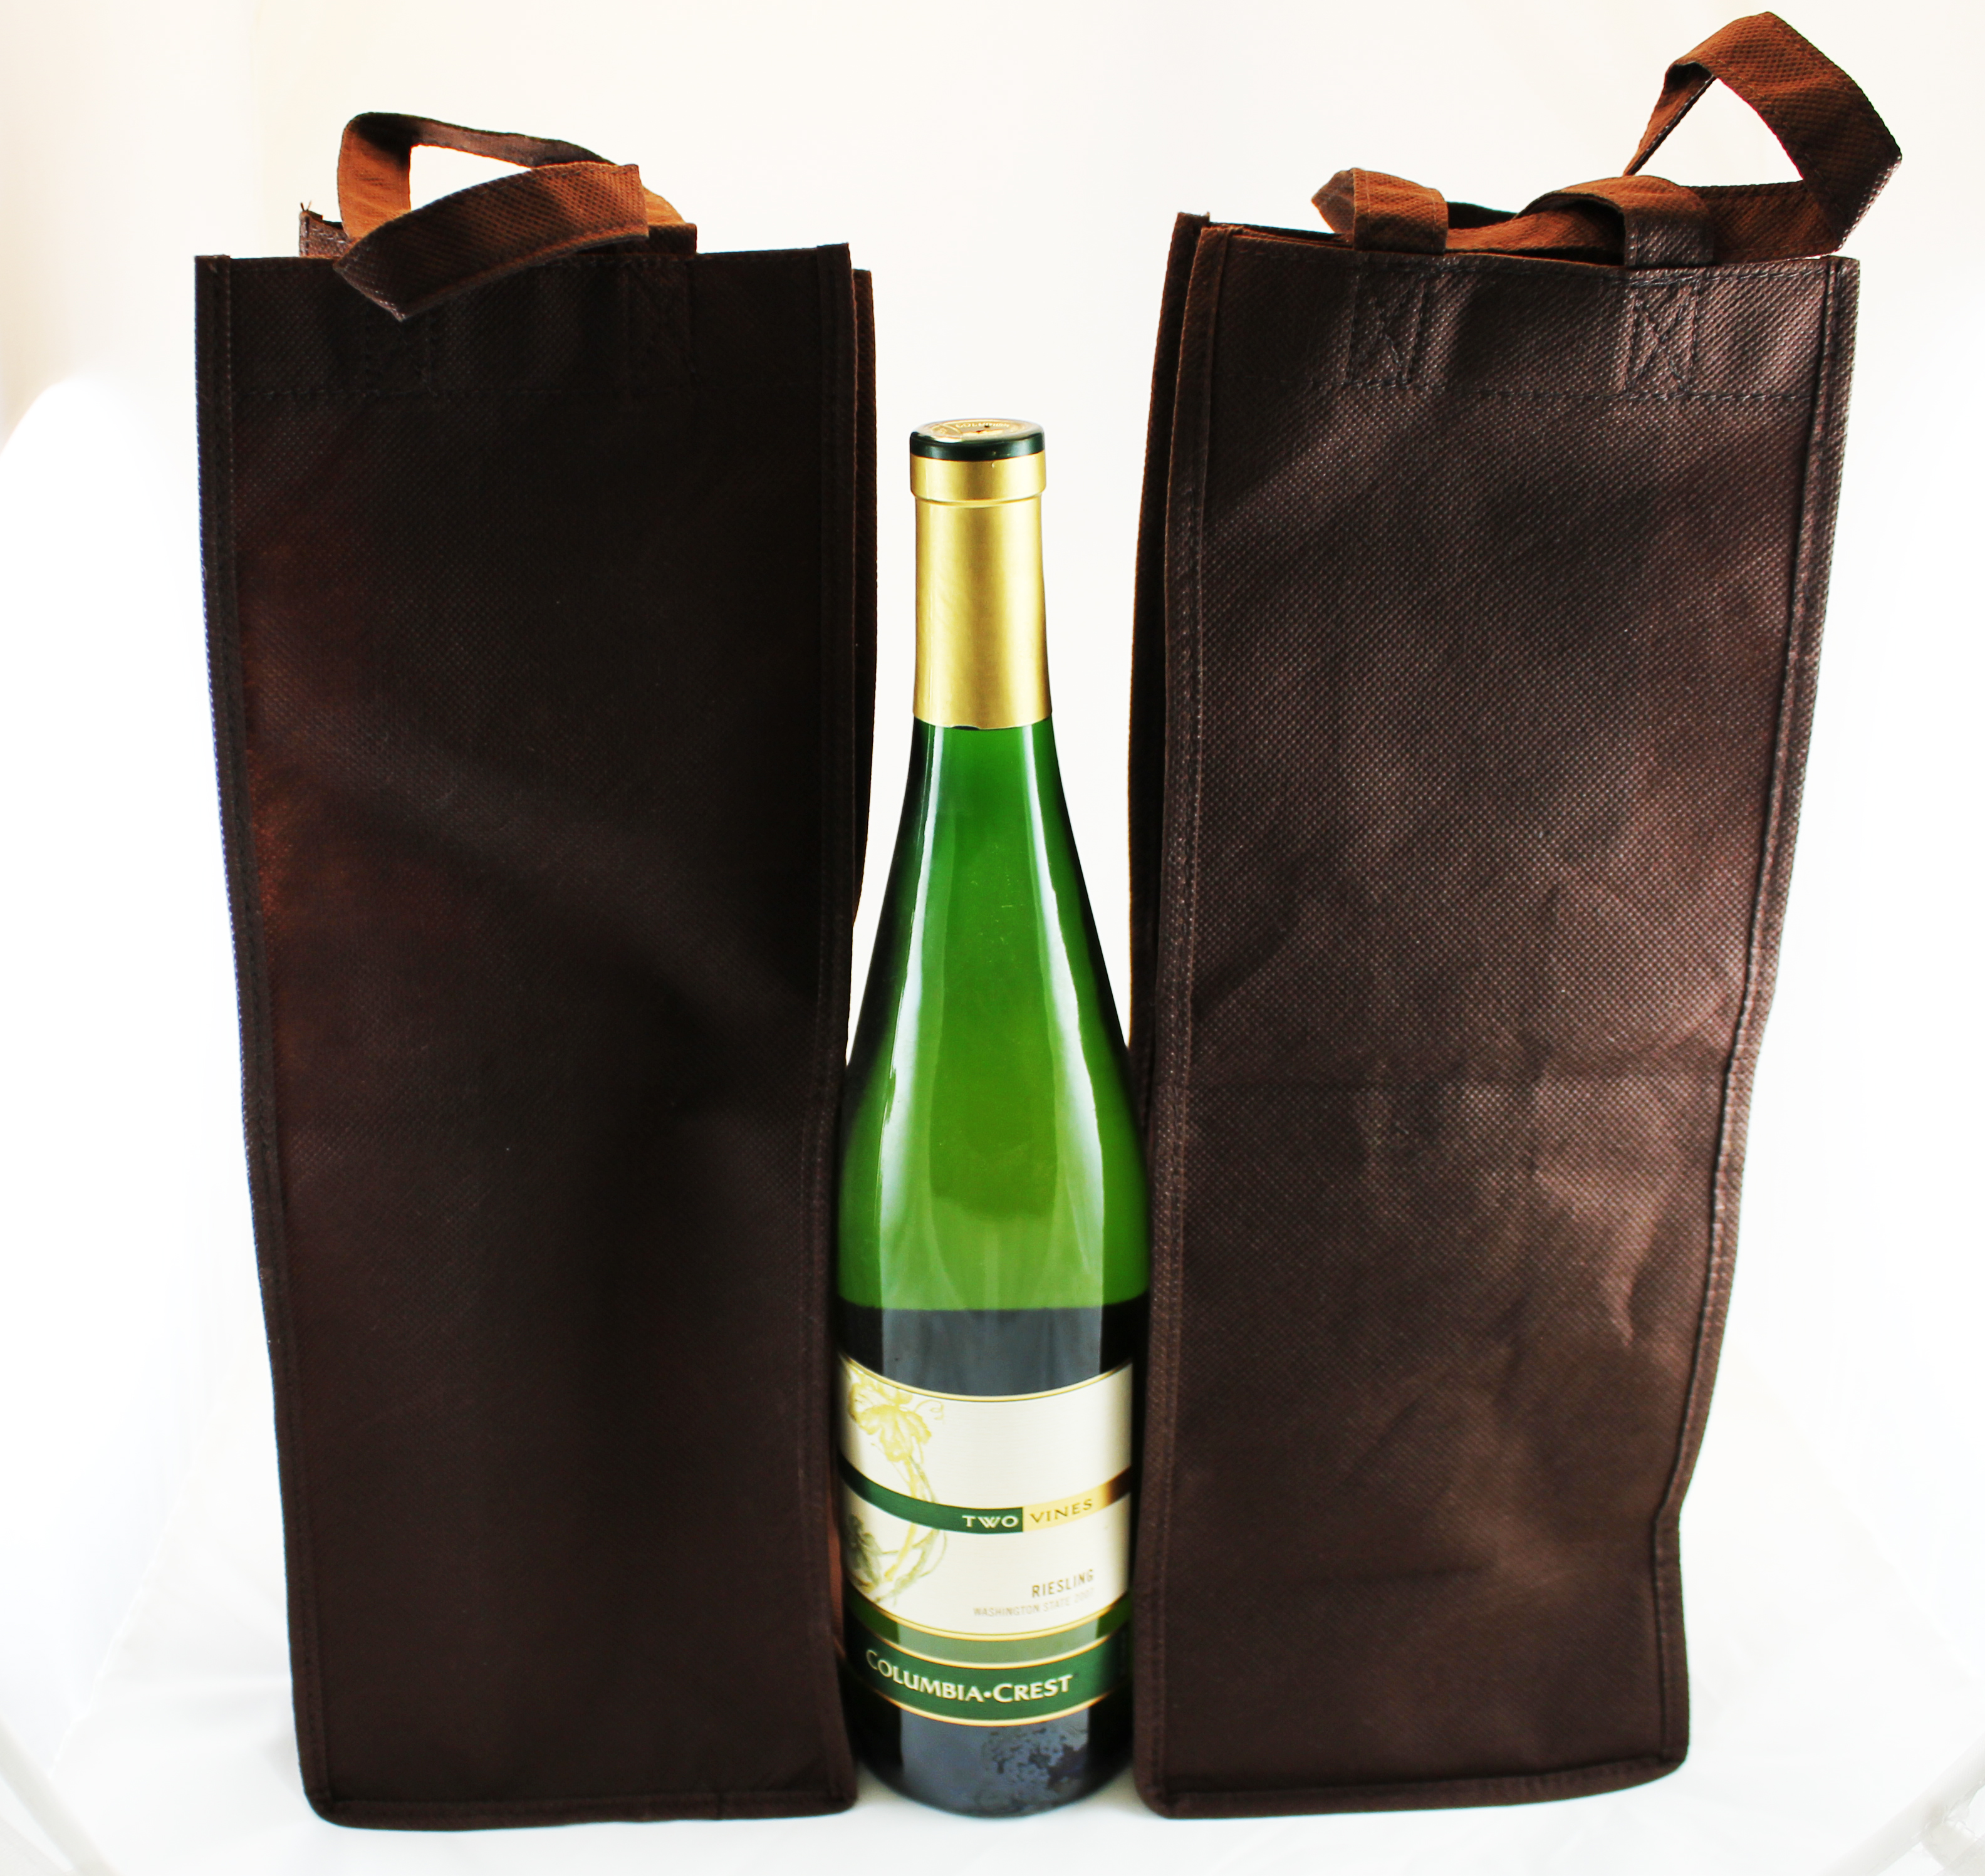 Brown wine totes with handles and pocket for bottle opener